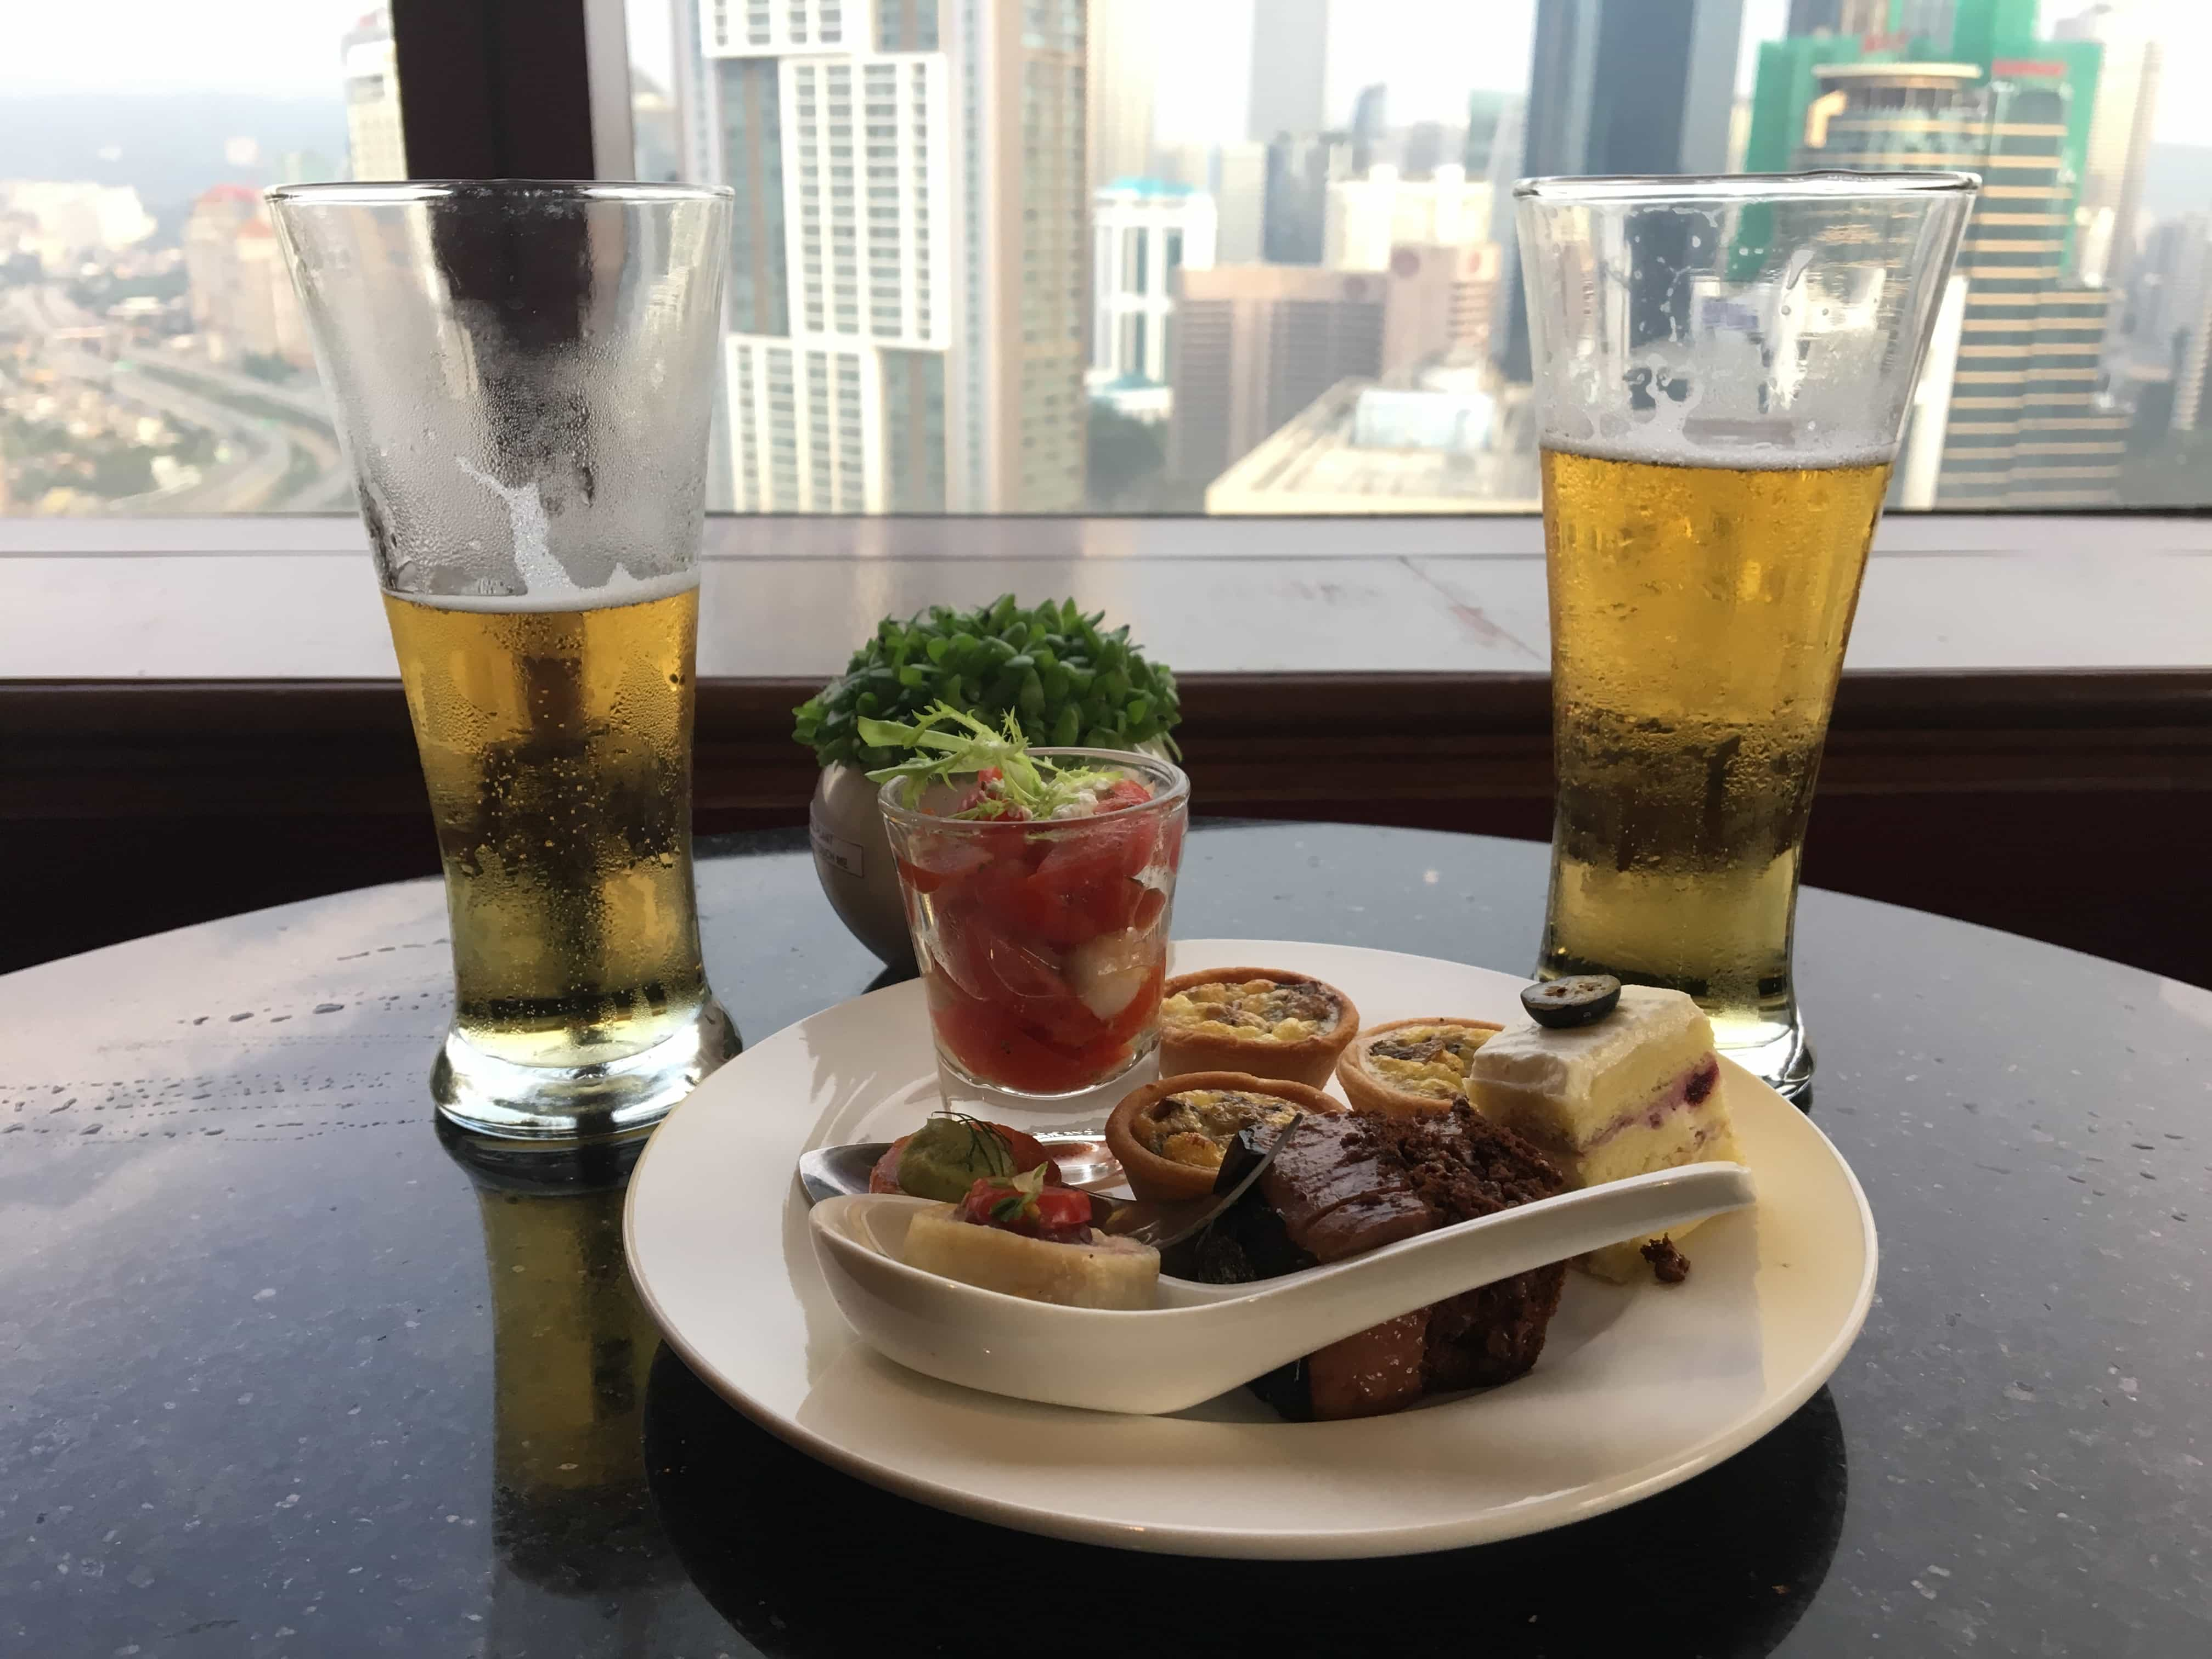 Beer with a view makes a perfect Kuala Lumpur experience